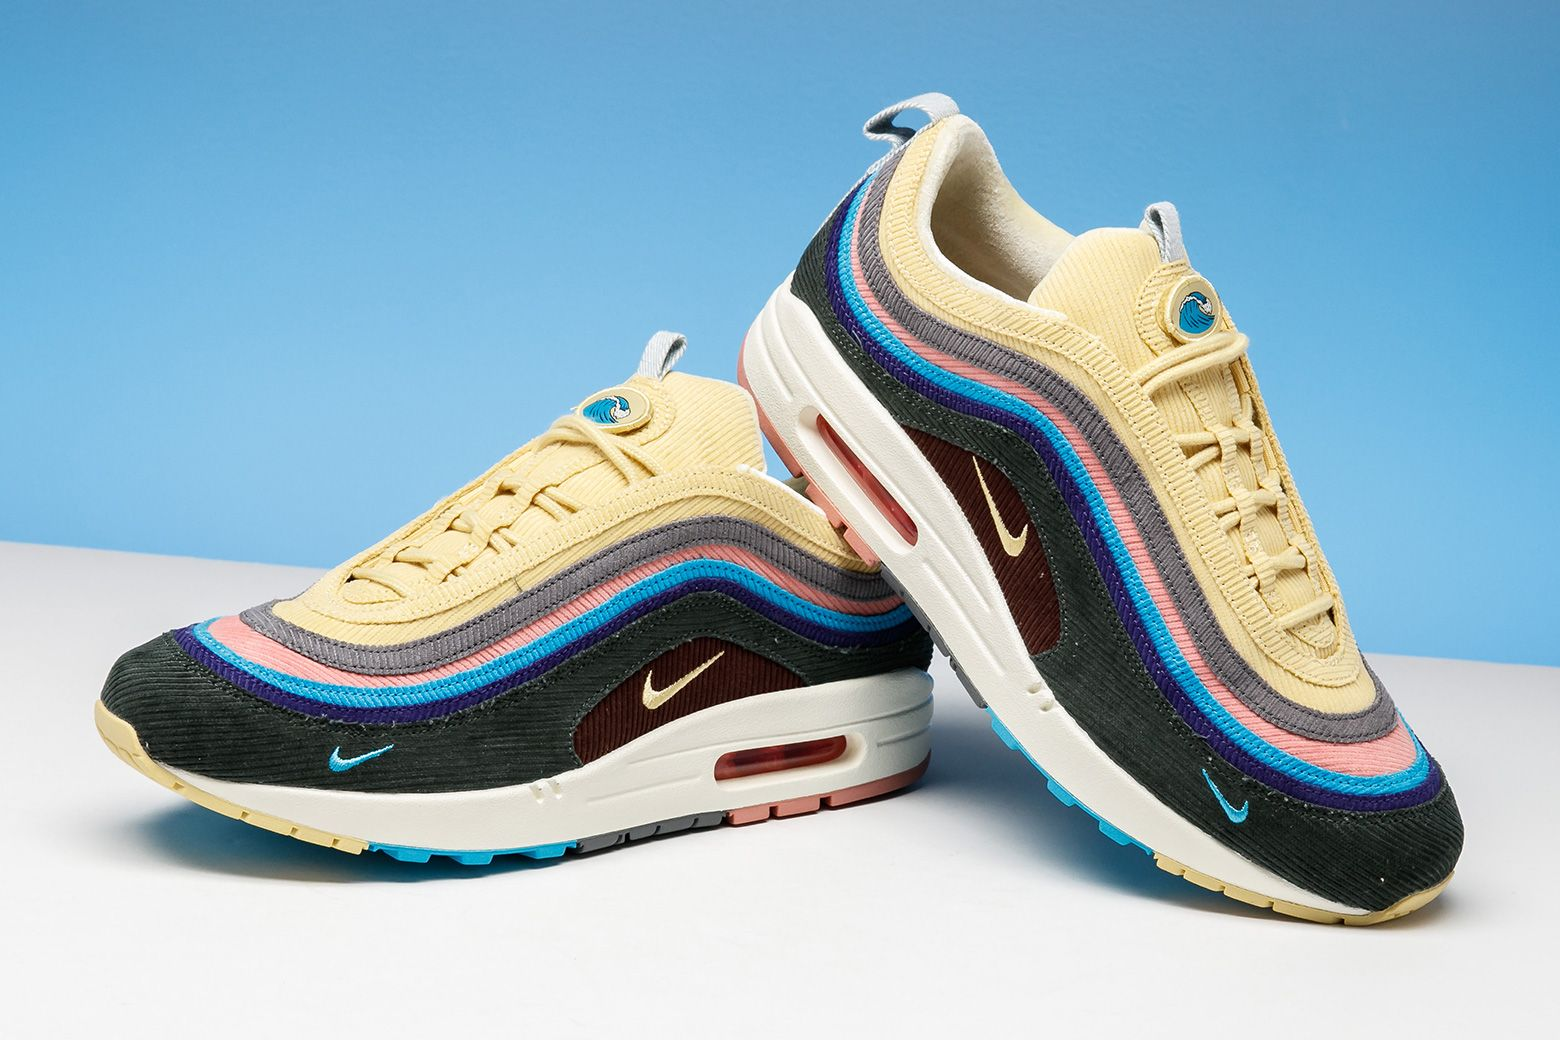 online retailer 447be 79cdc Sneaker Trivia  Who collaborated with Nike on this Air Max 1 97 hybrid